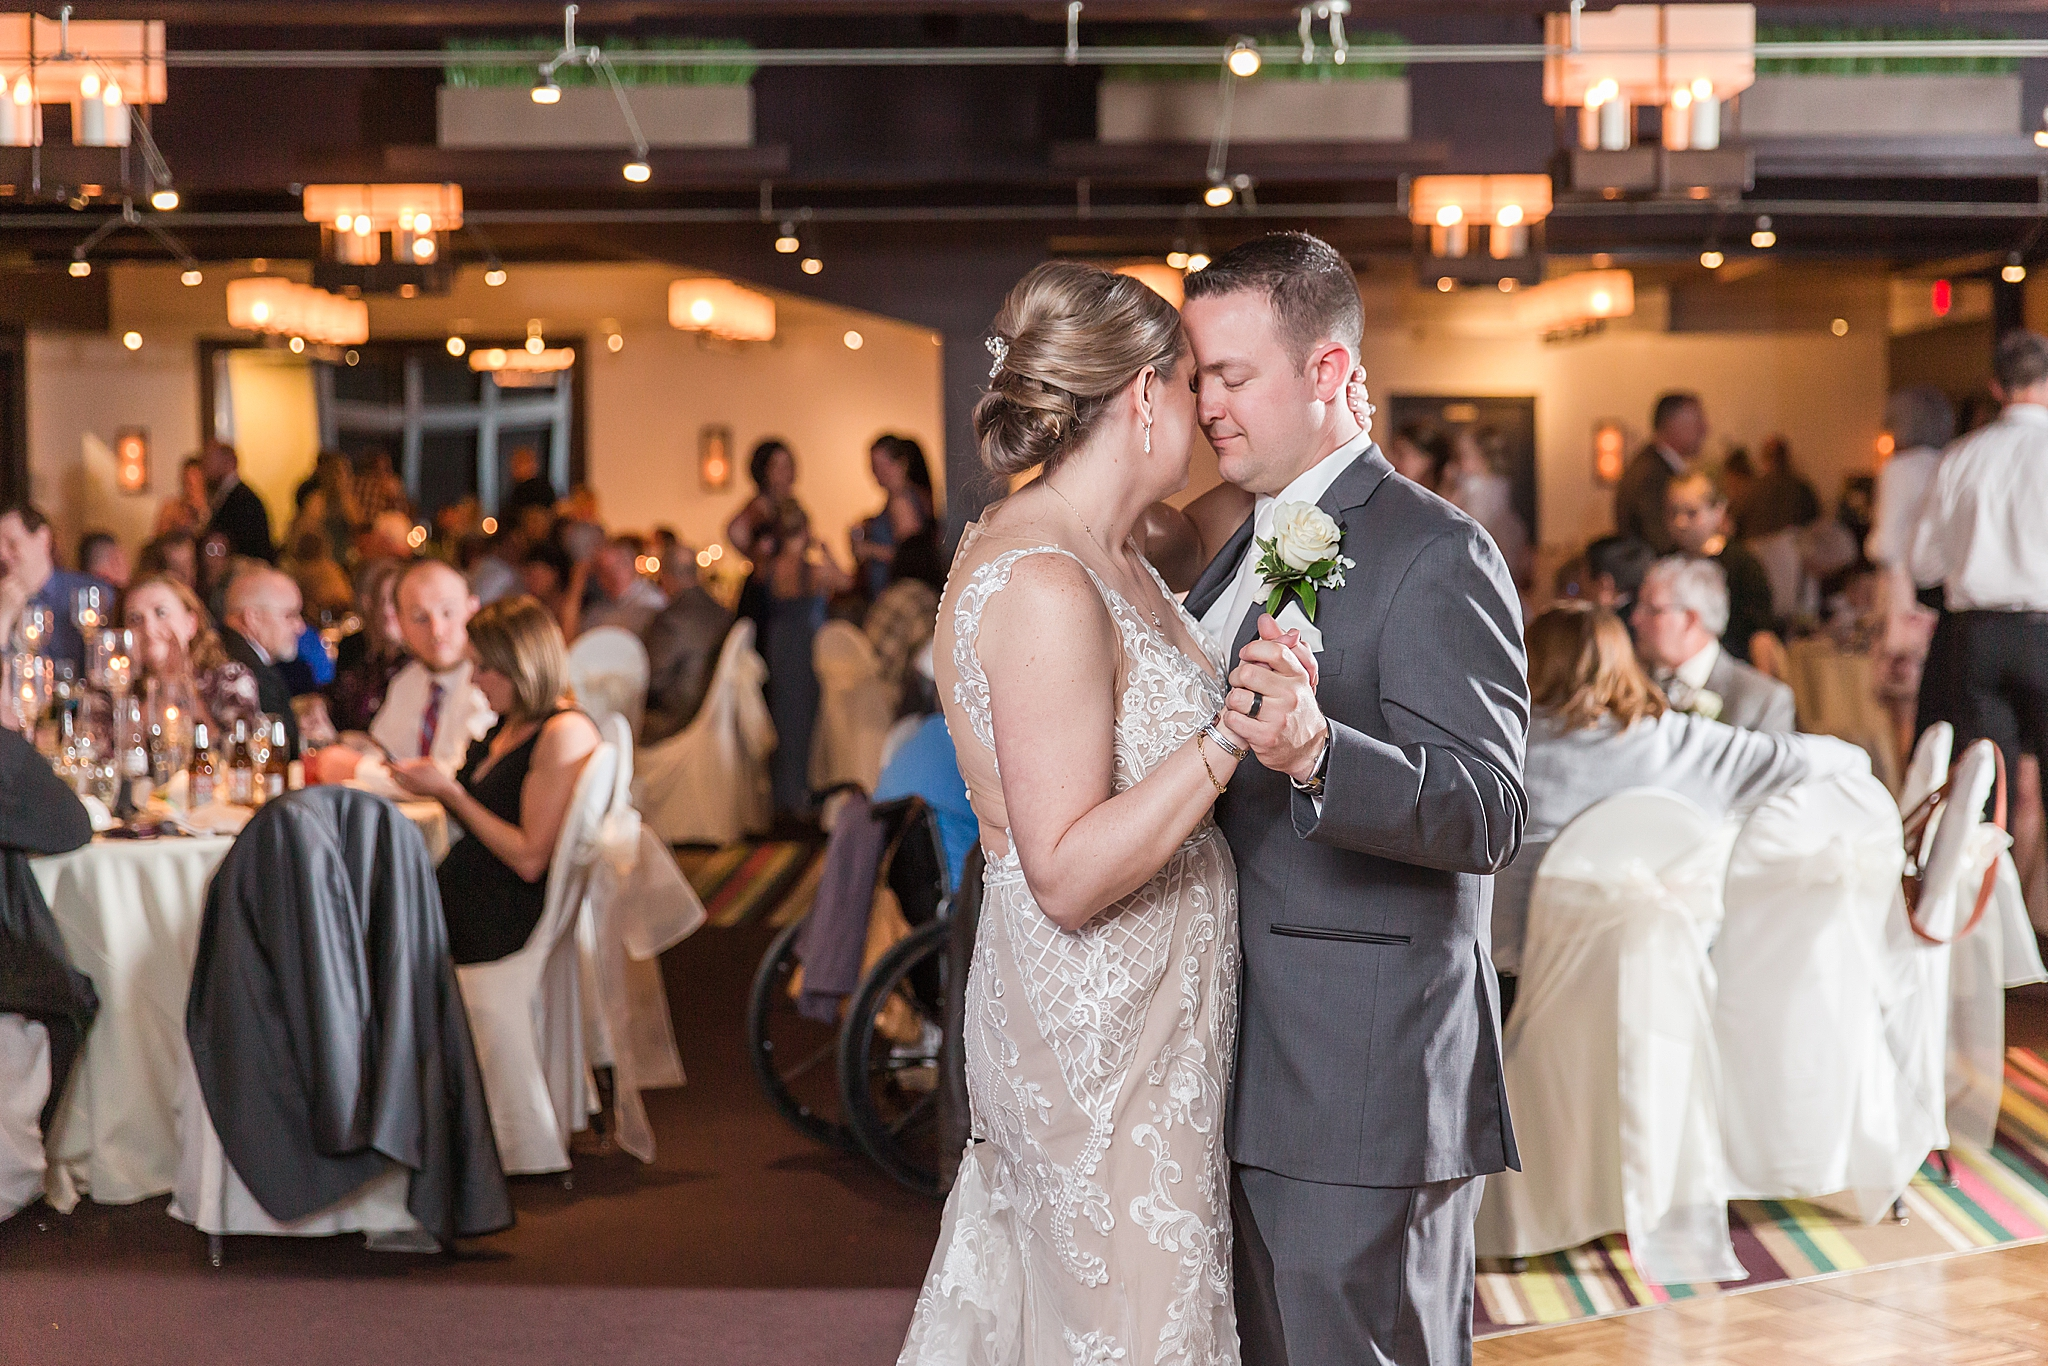 modern-romantic-wedding-photography-at-webers-in-ann-arbor-michigan-by-courtney-carolyn-photography_0080.jpg